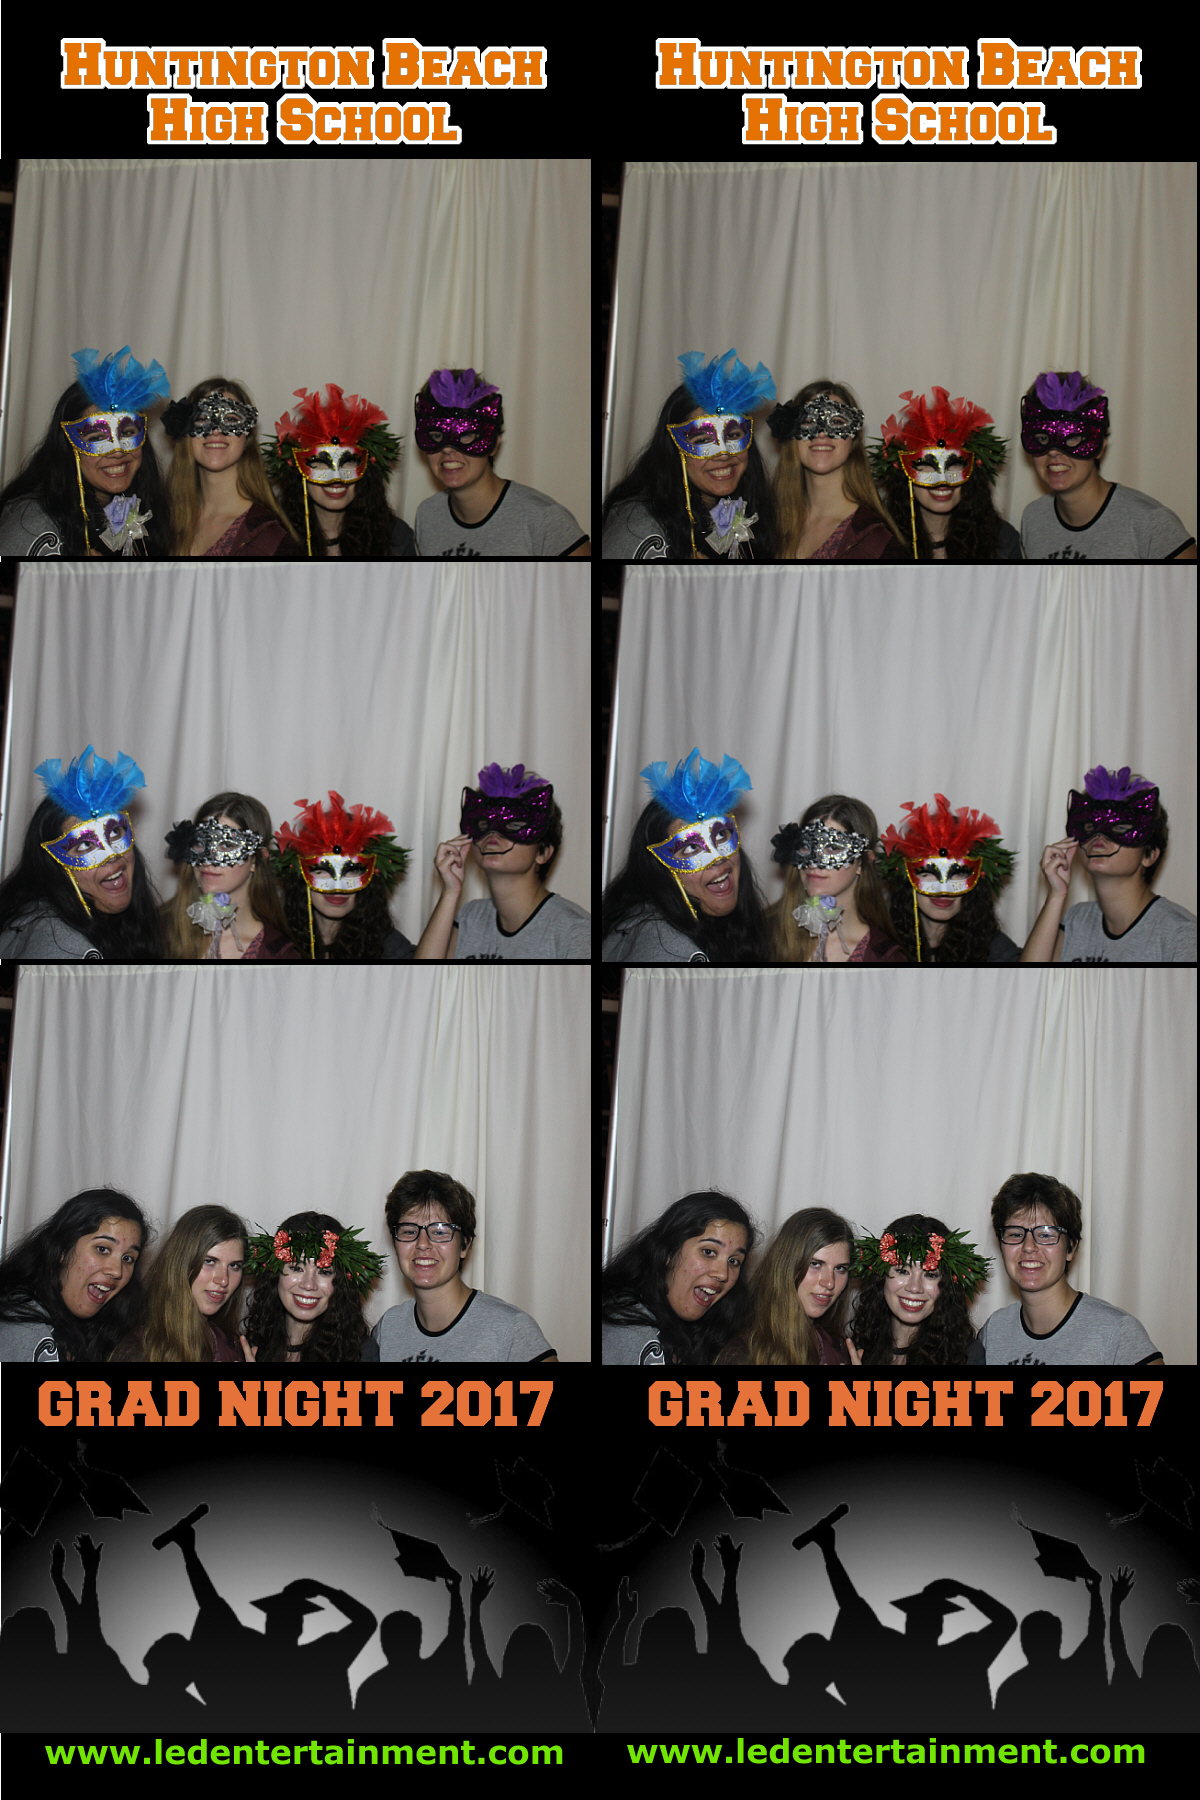 Huntington Beach HS Grad Night